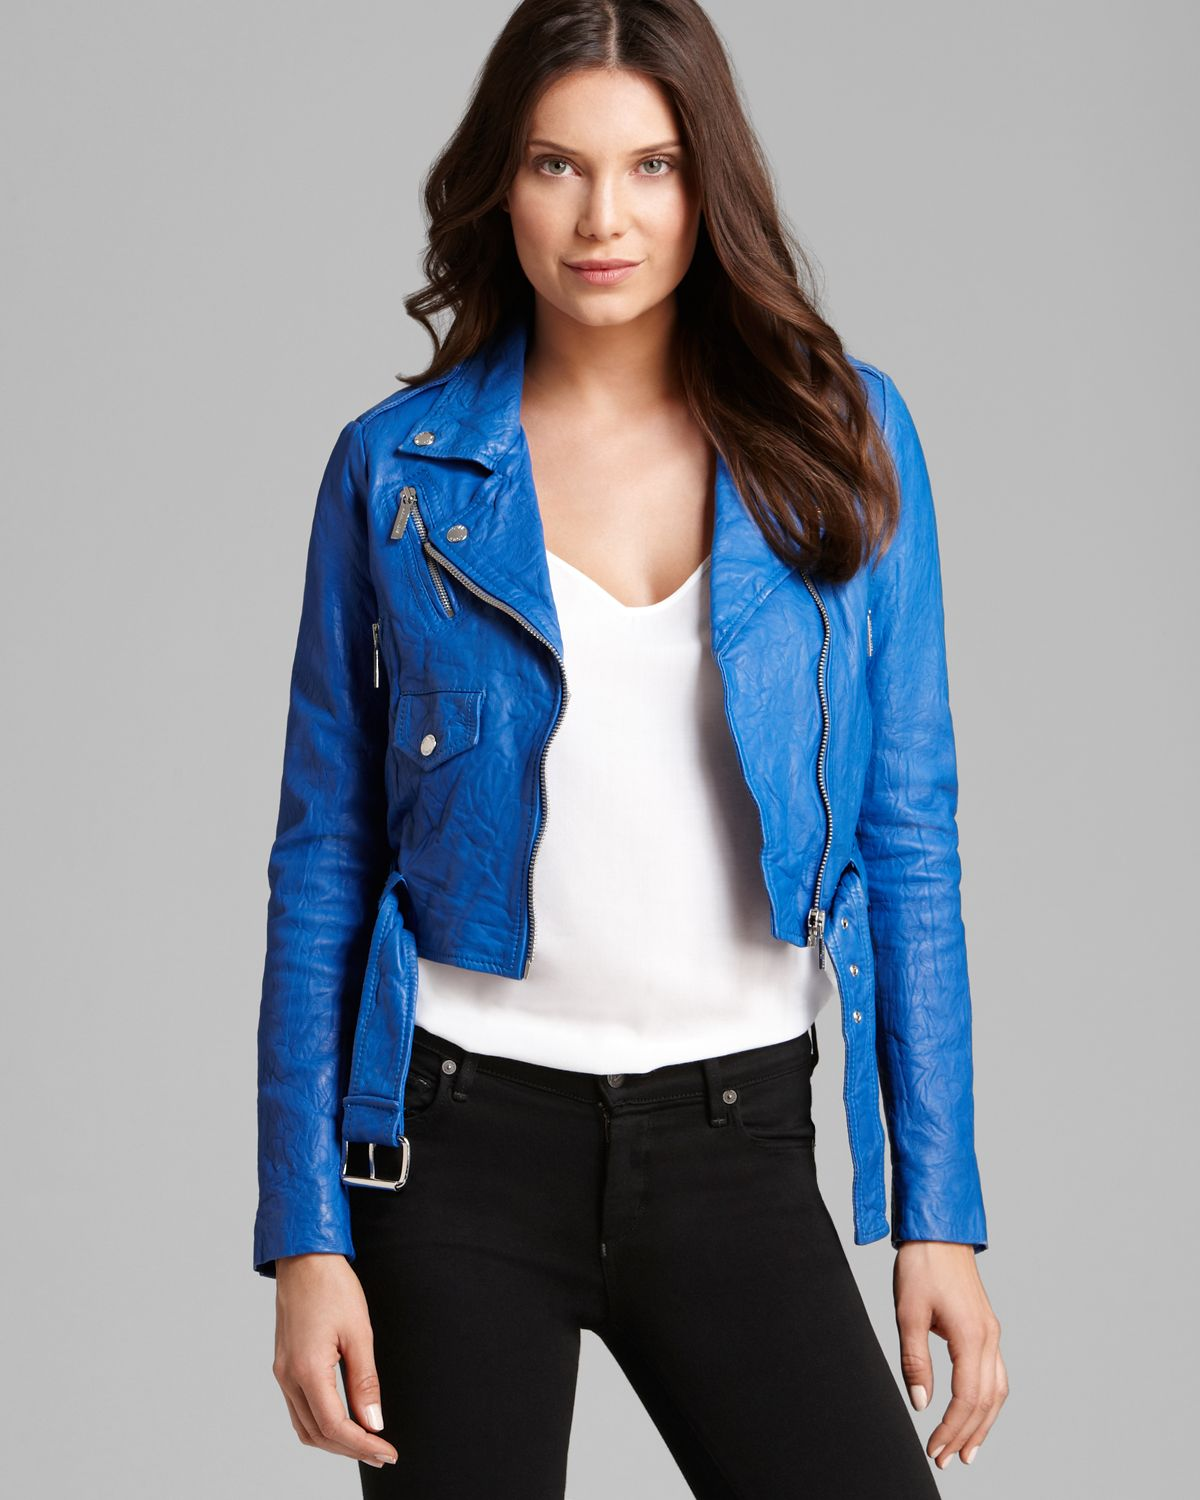 Find Blue Motorcycle Jackets at J&P Cycles, your source for aftermarket motorcycle parts and accessories.